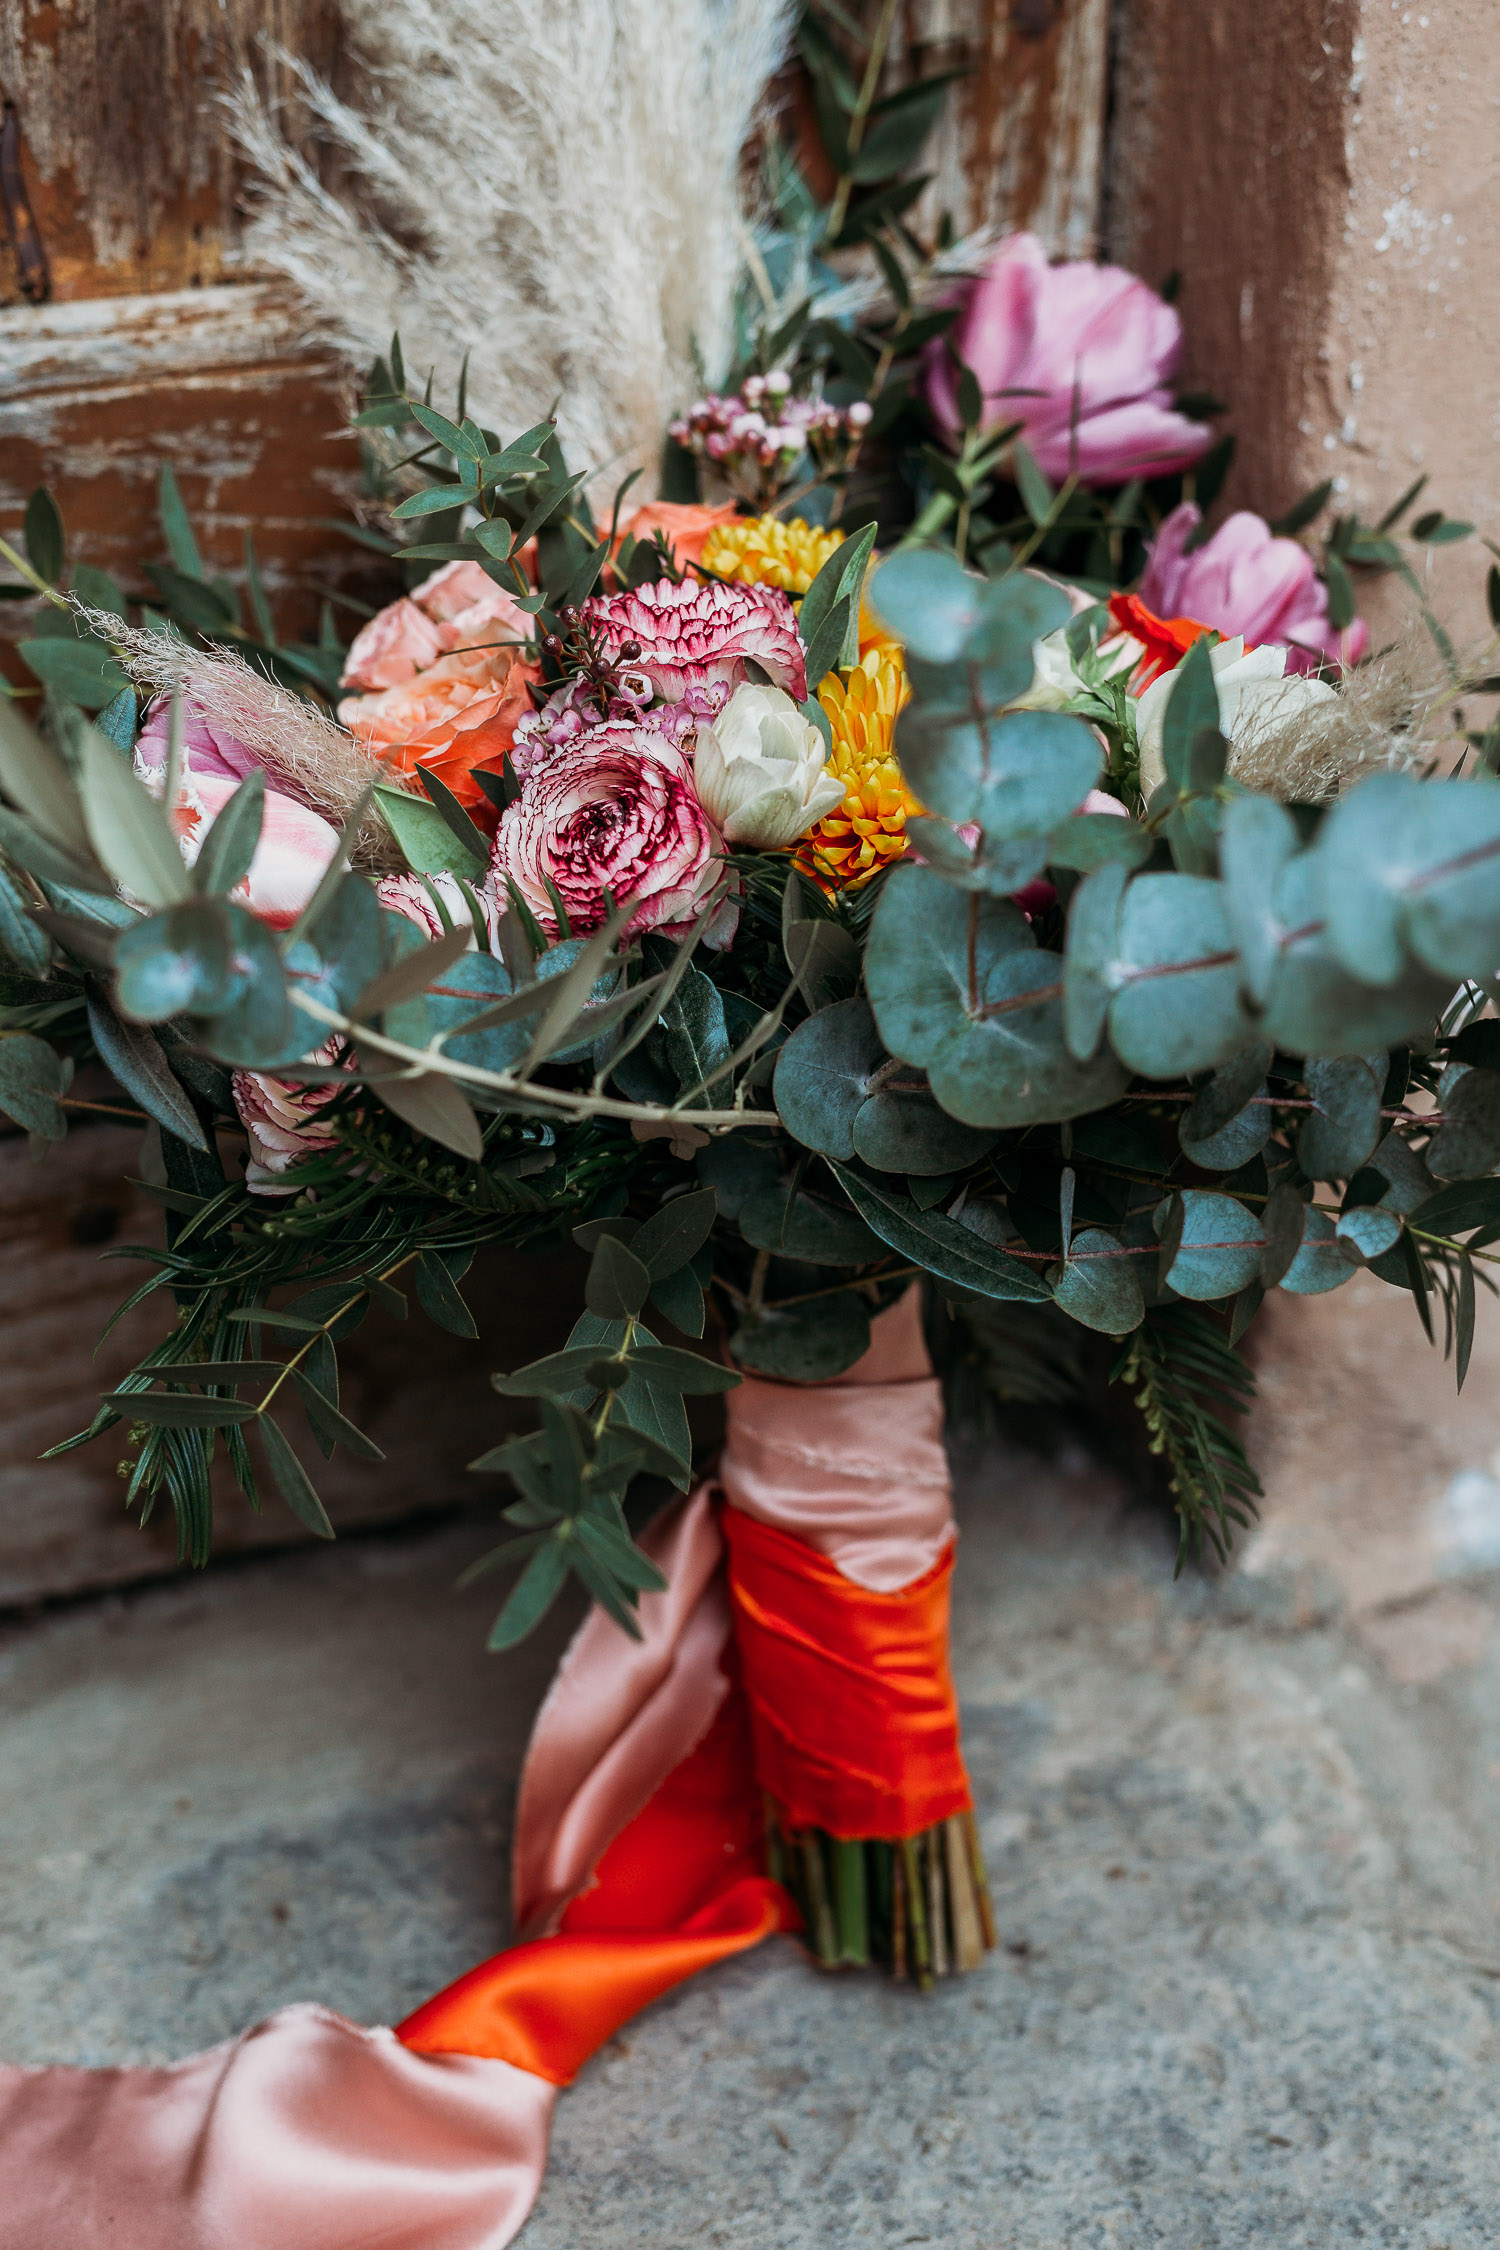 Orange and pink ribbons for the bouquet made by Sposami Oggi fort Tenimento il Castello